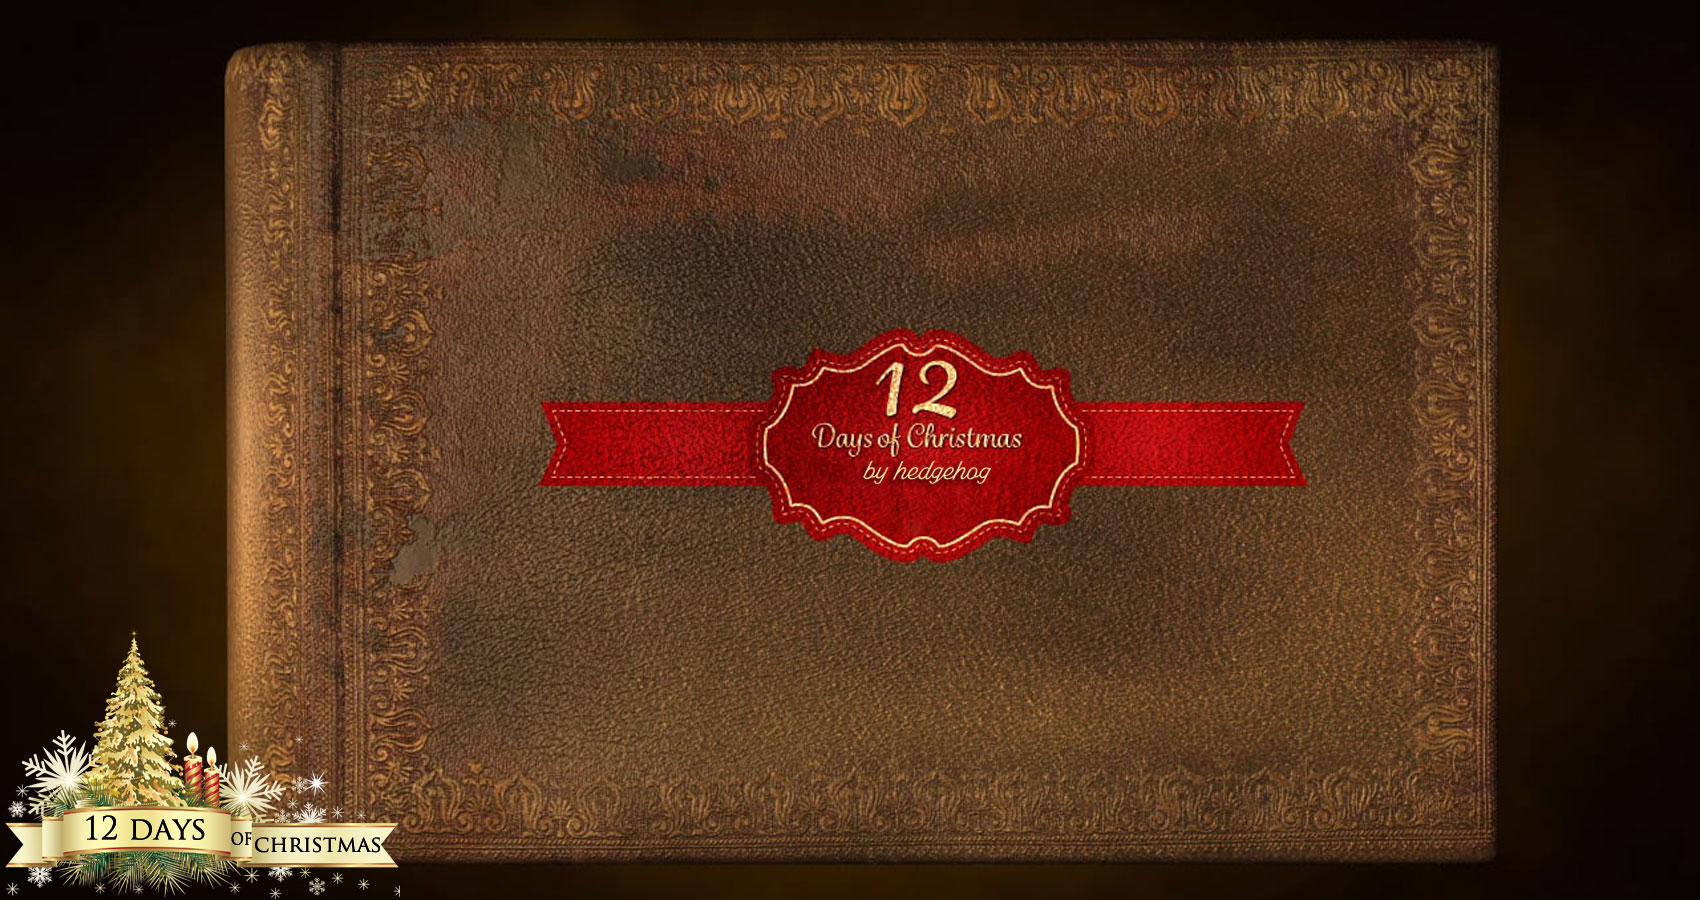 The Twelve Days Of Christmas written by hedgehog at Spillwords.com